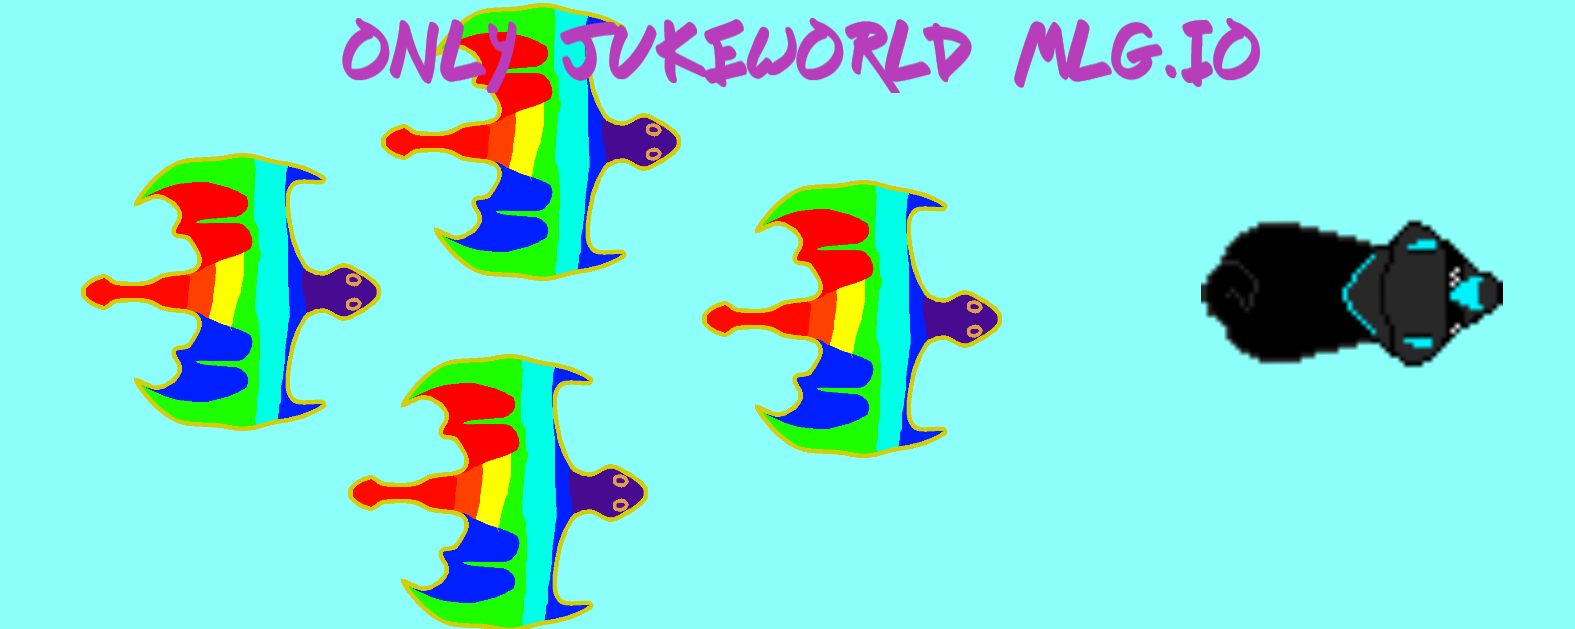 JukeWorld